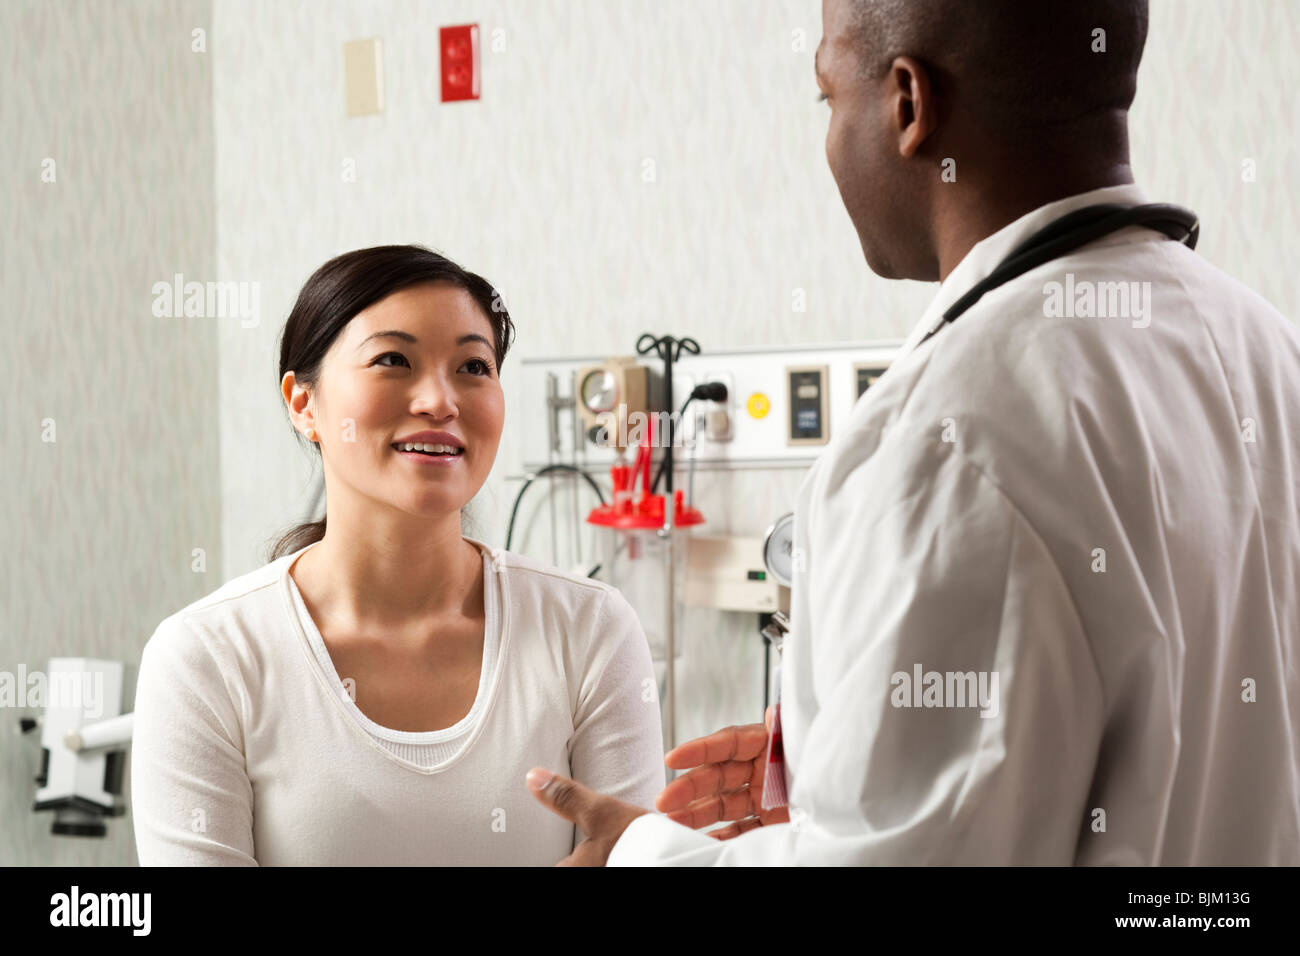 Doctor talking to woman in examining room - Stock Image